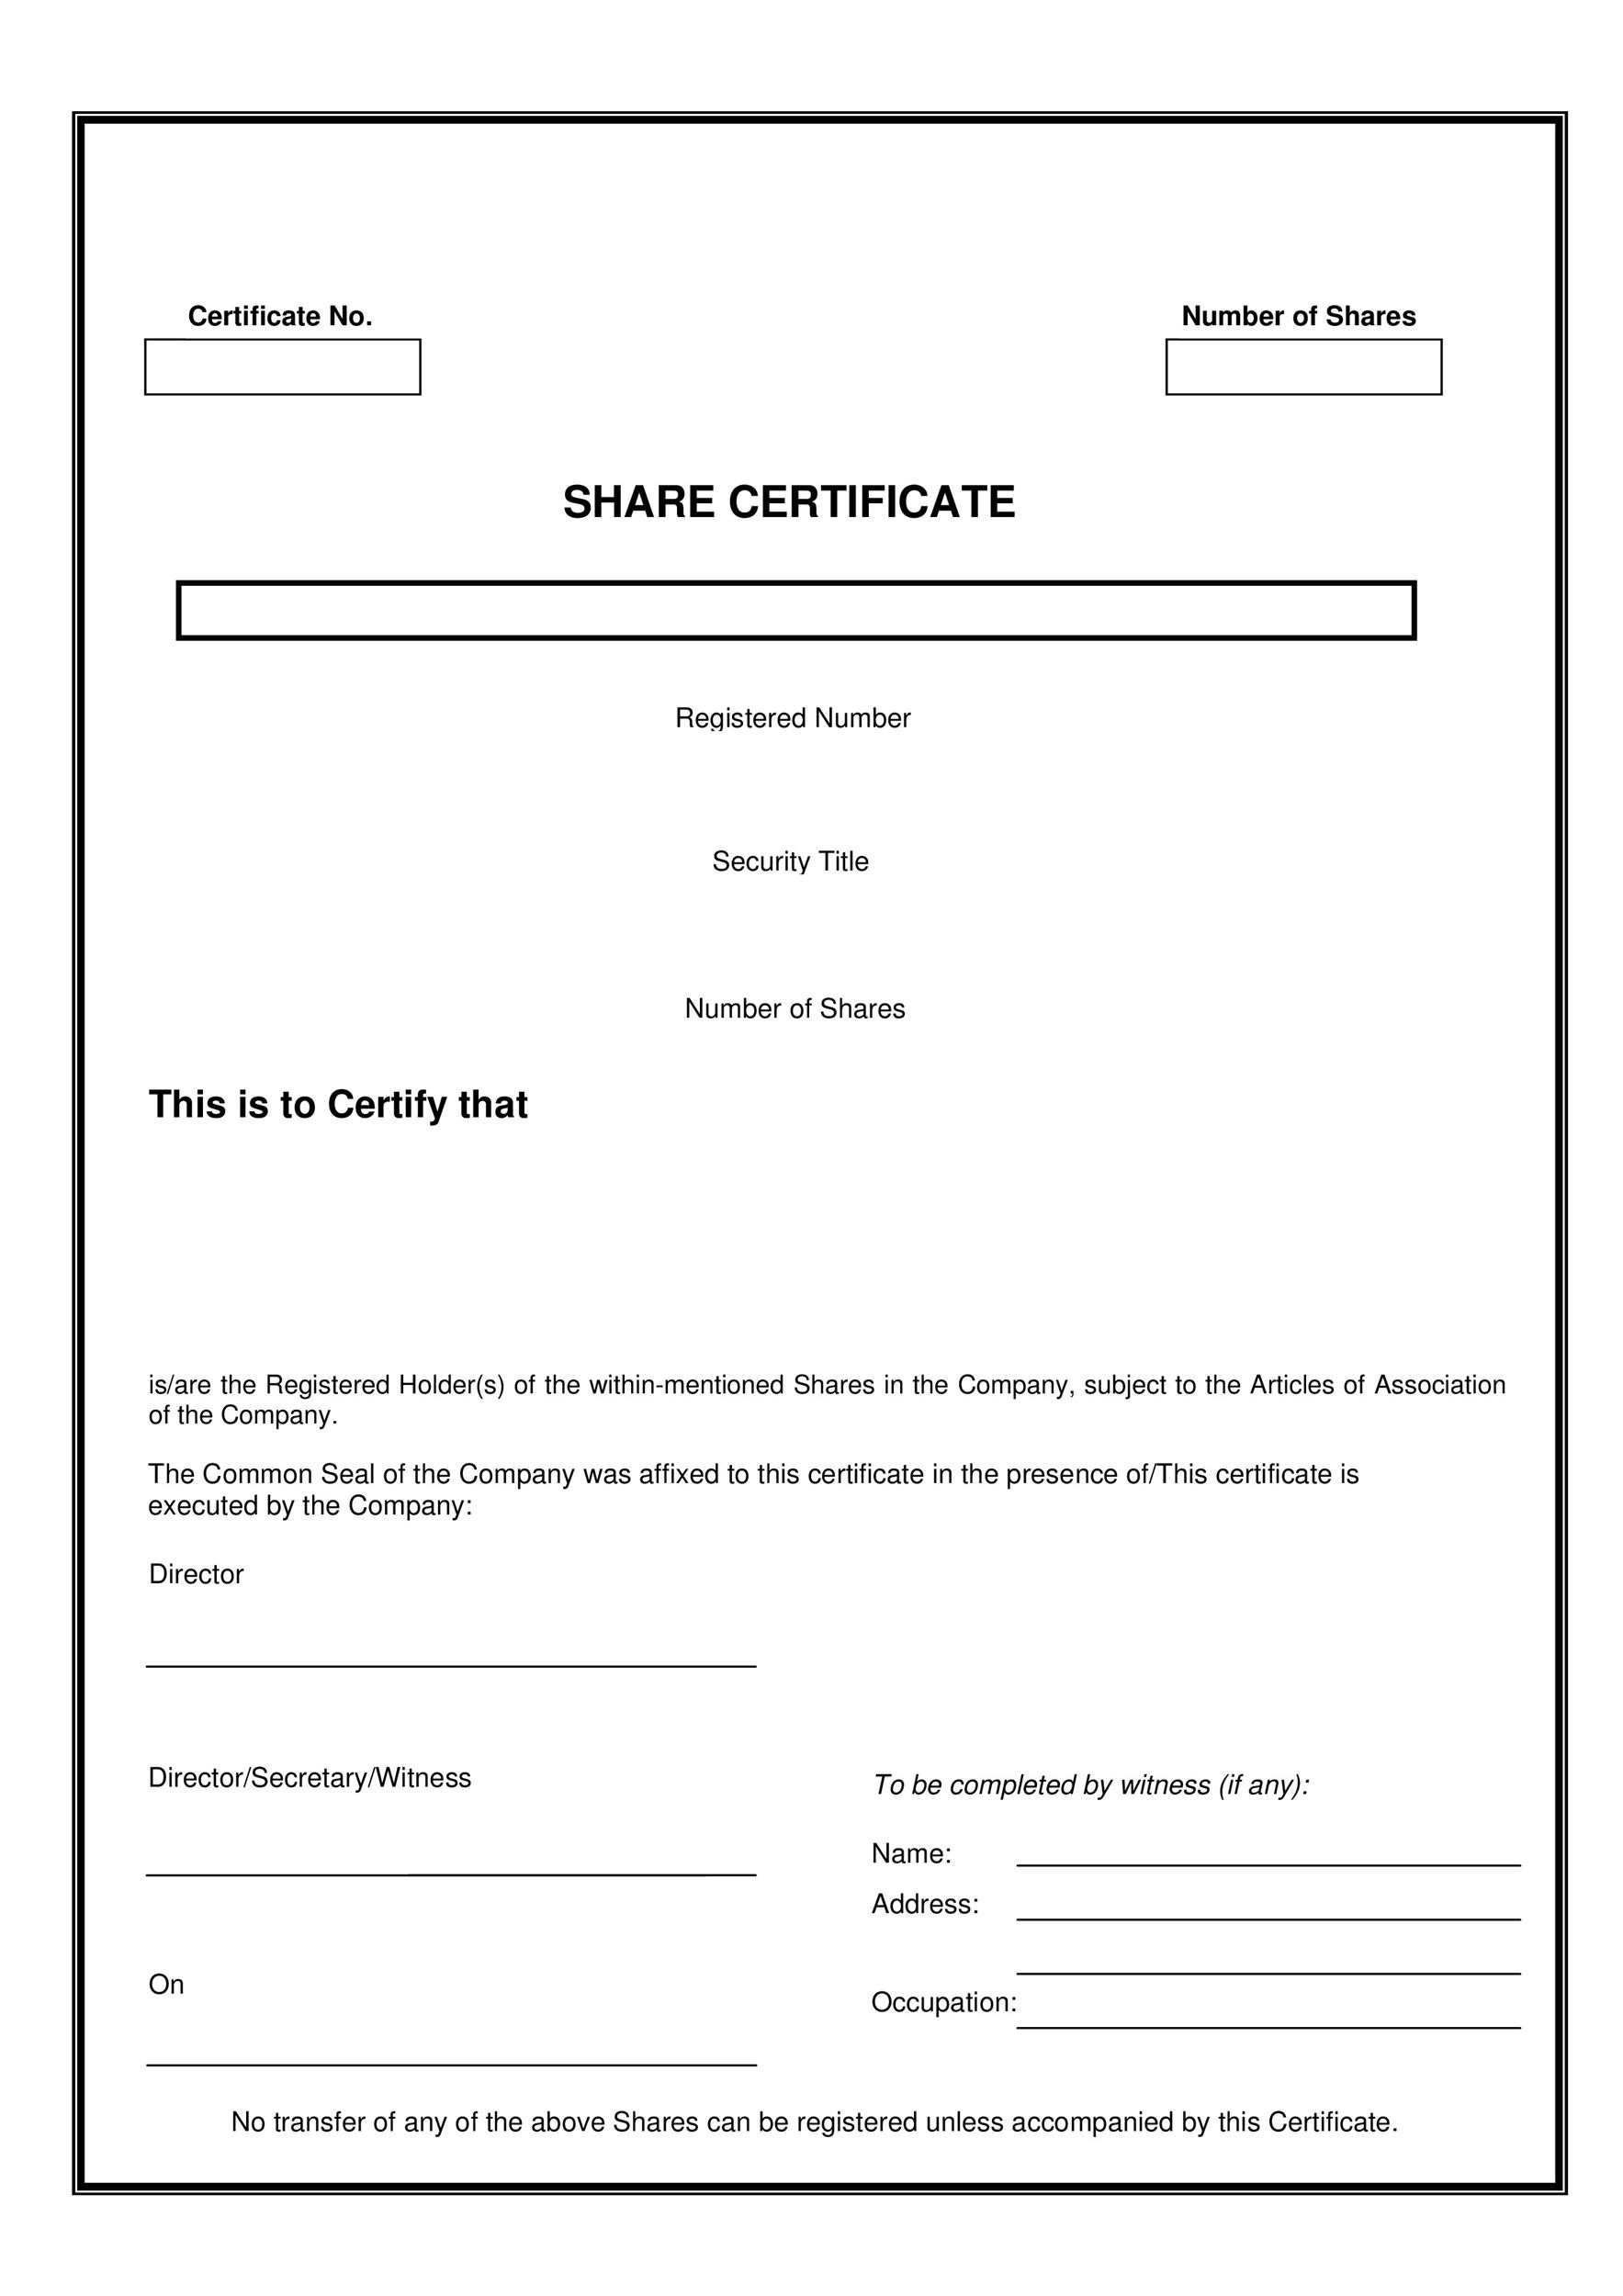 40 free stock certificate templates word pdf template lab free stock certificate templates xflitez Choice Image